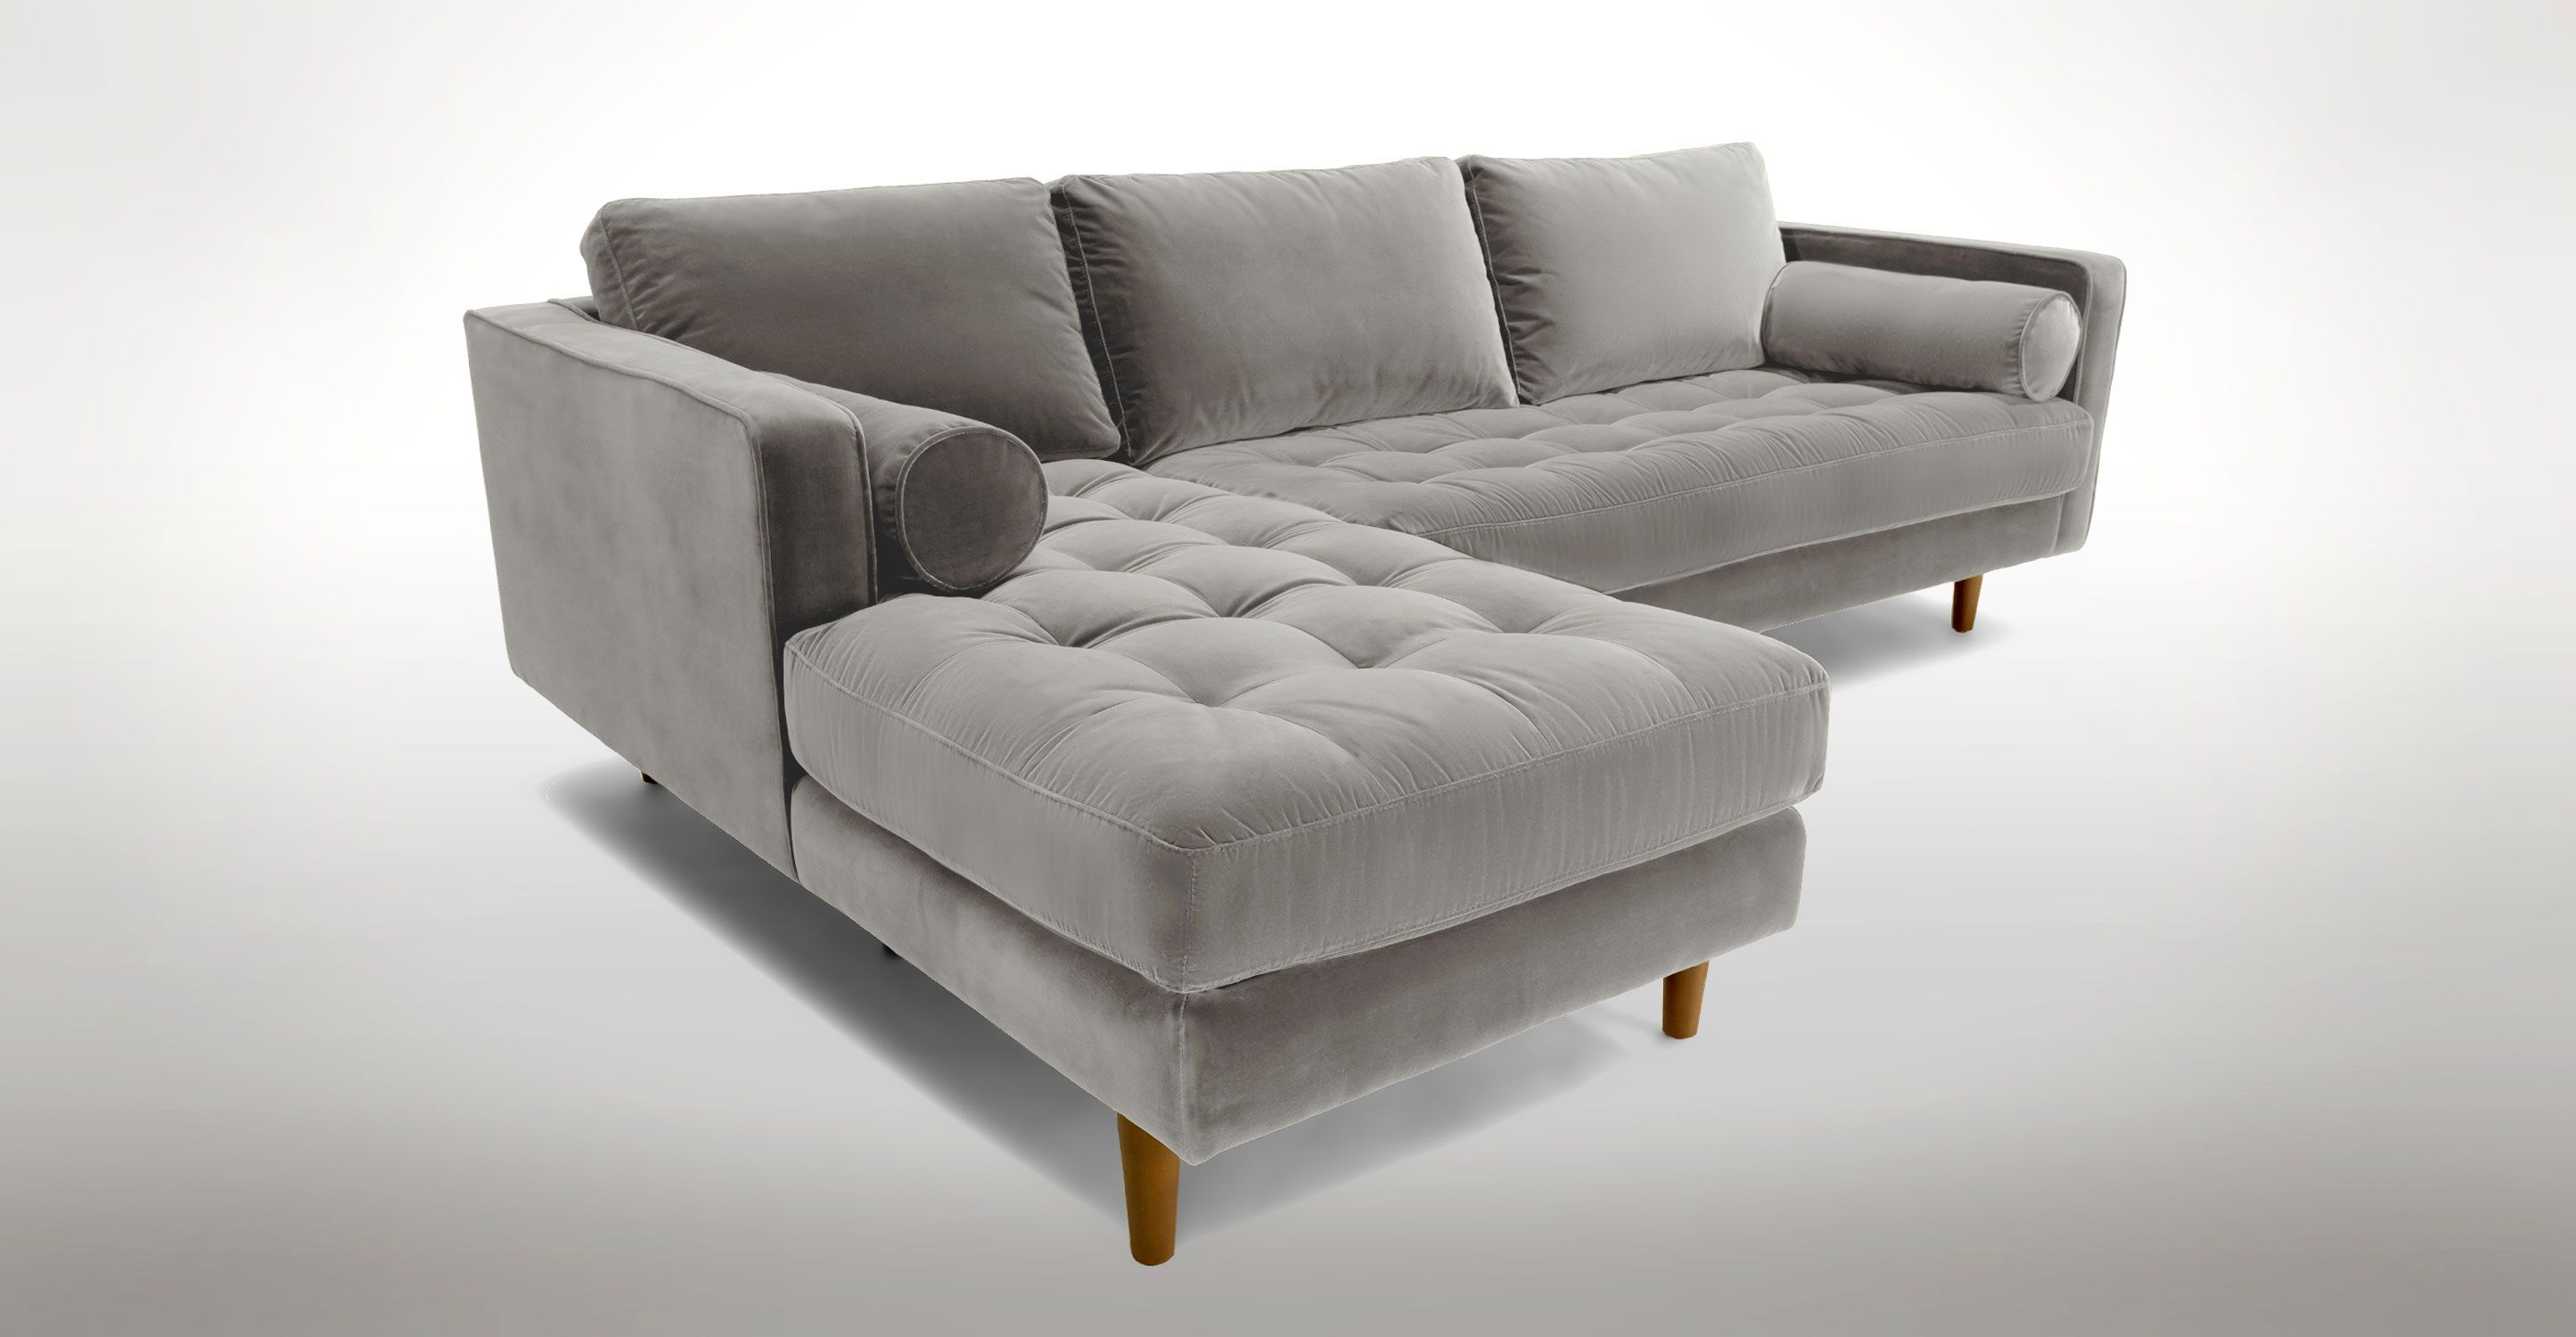 Sven Intuition Gray Left Sectional Sofa Sectional Sofa Sectional Sofa With Chaise Deep Sectional Sofa